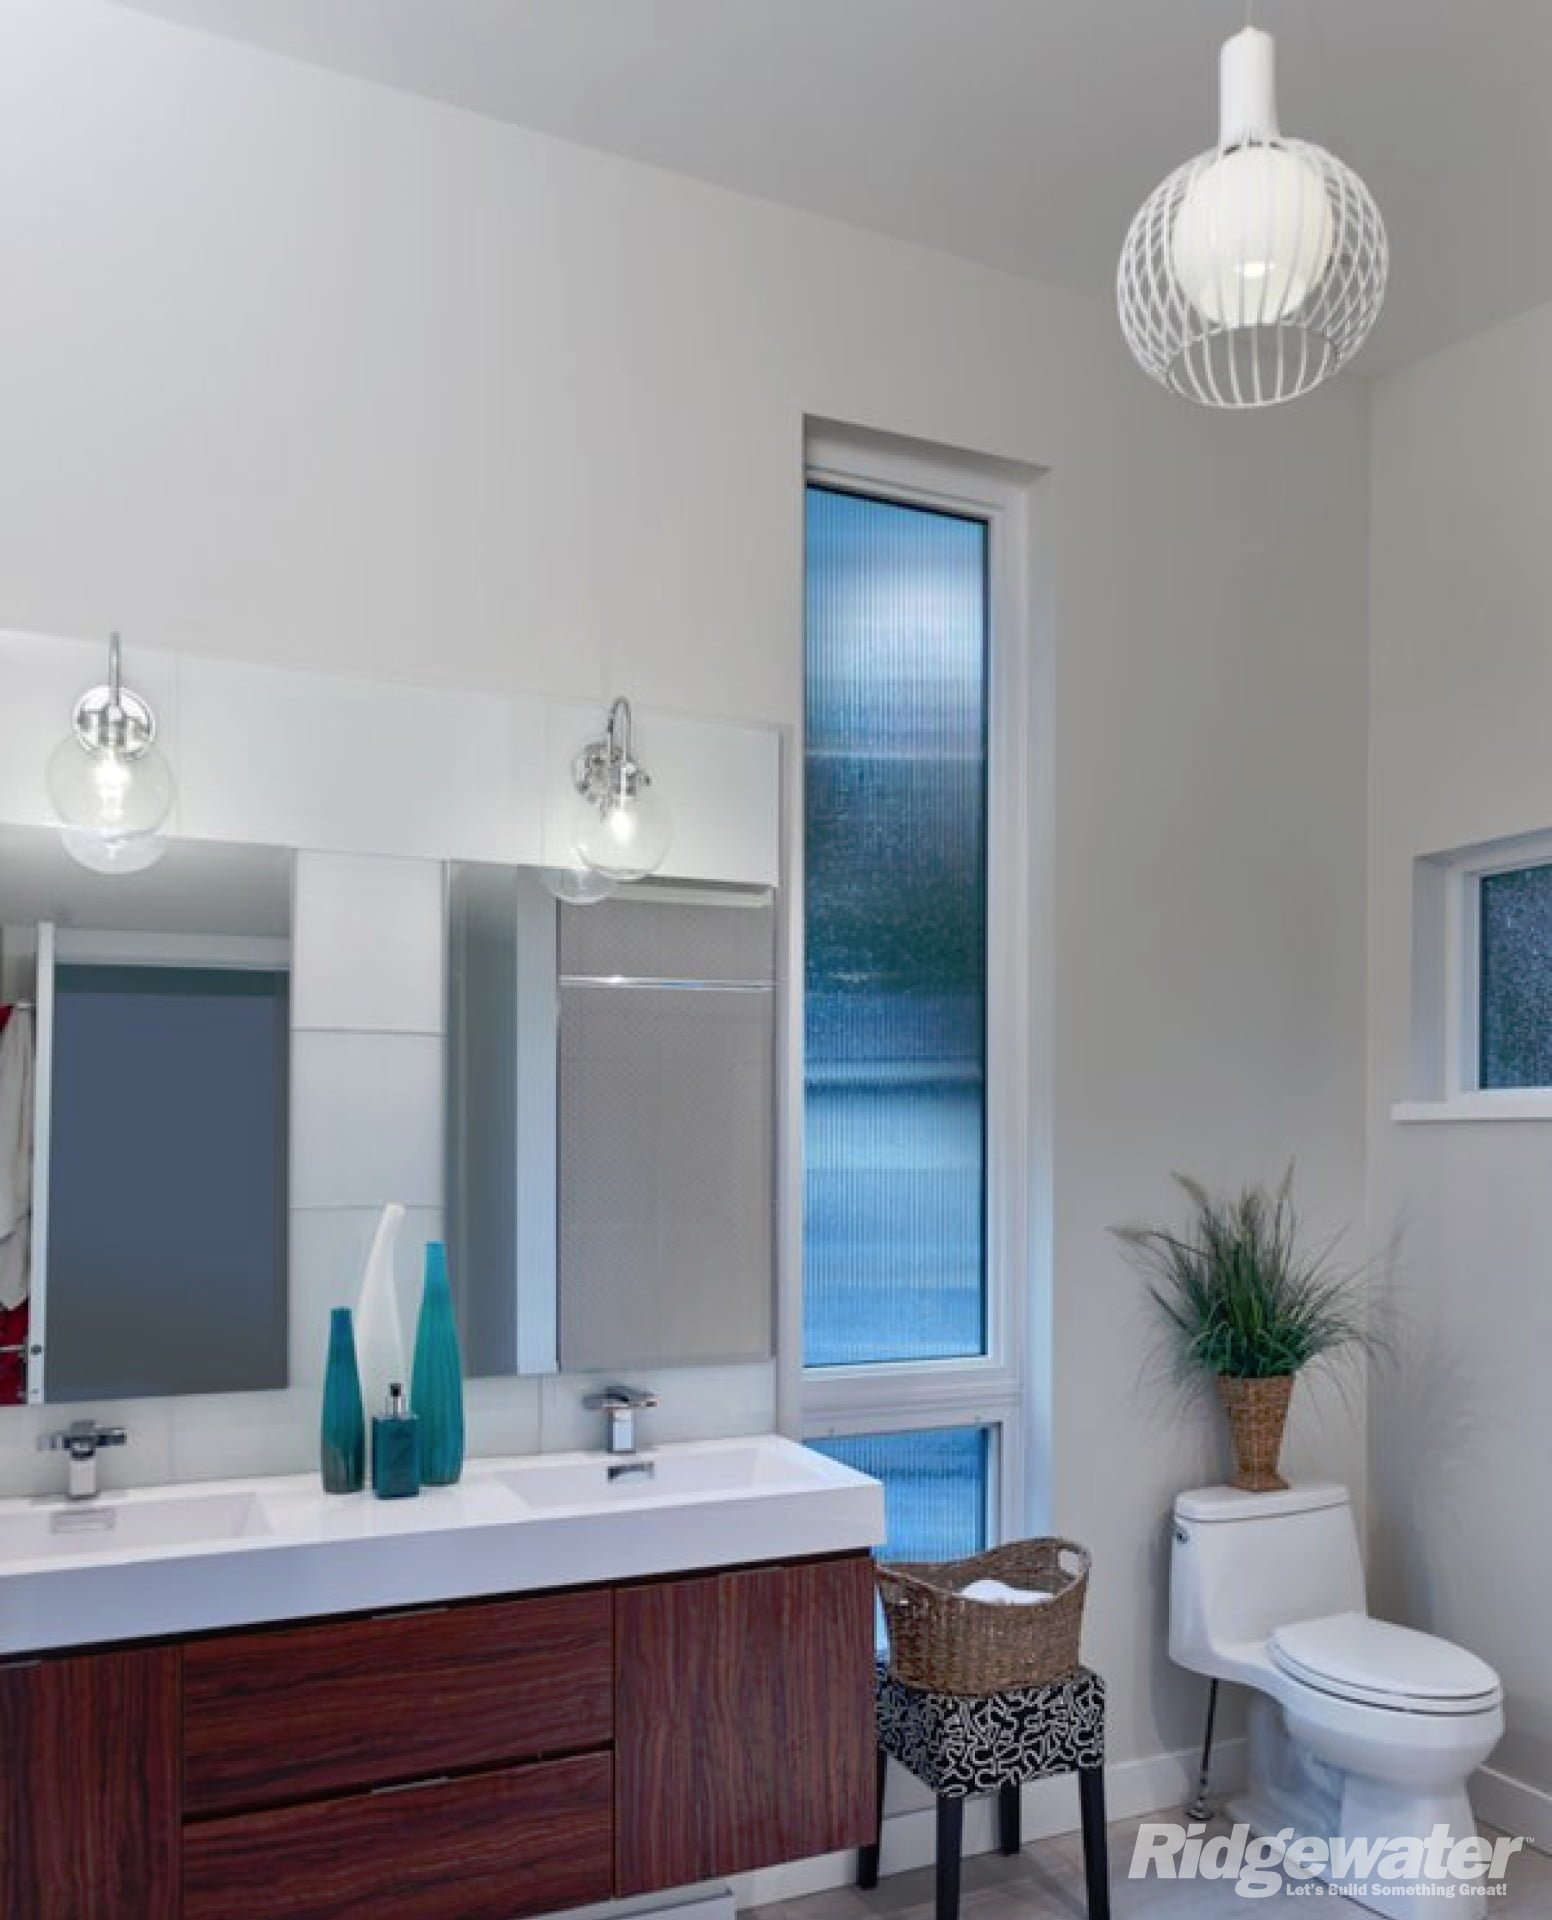 Bathroom Renovations Coquitlam: Mid Century Modern Project